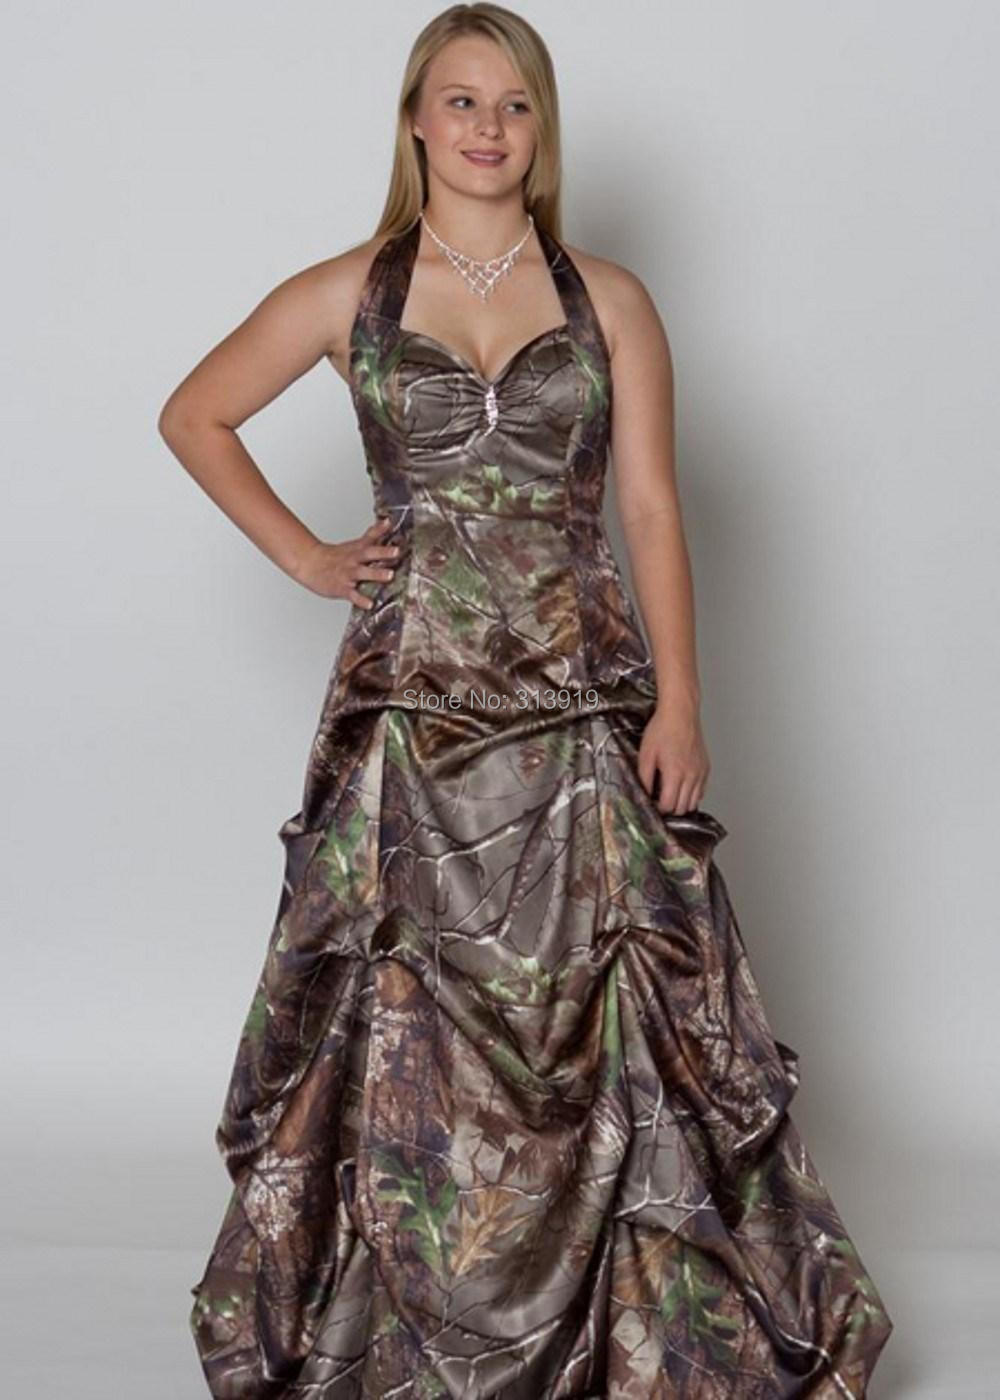 236fad3b9c printing military realtree camo prom dress 2017 new styles camouflage gowns  size 0 custom make free shipping-in Prom Dresses from Weddings   Events on  ...